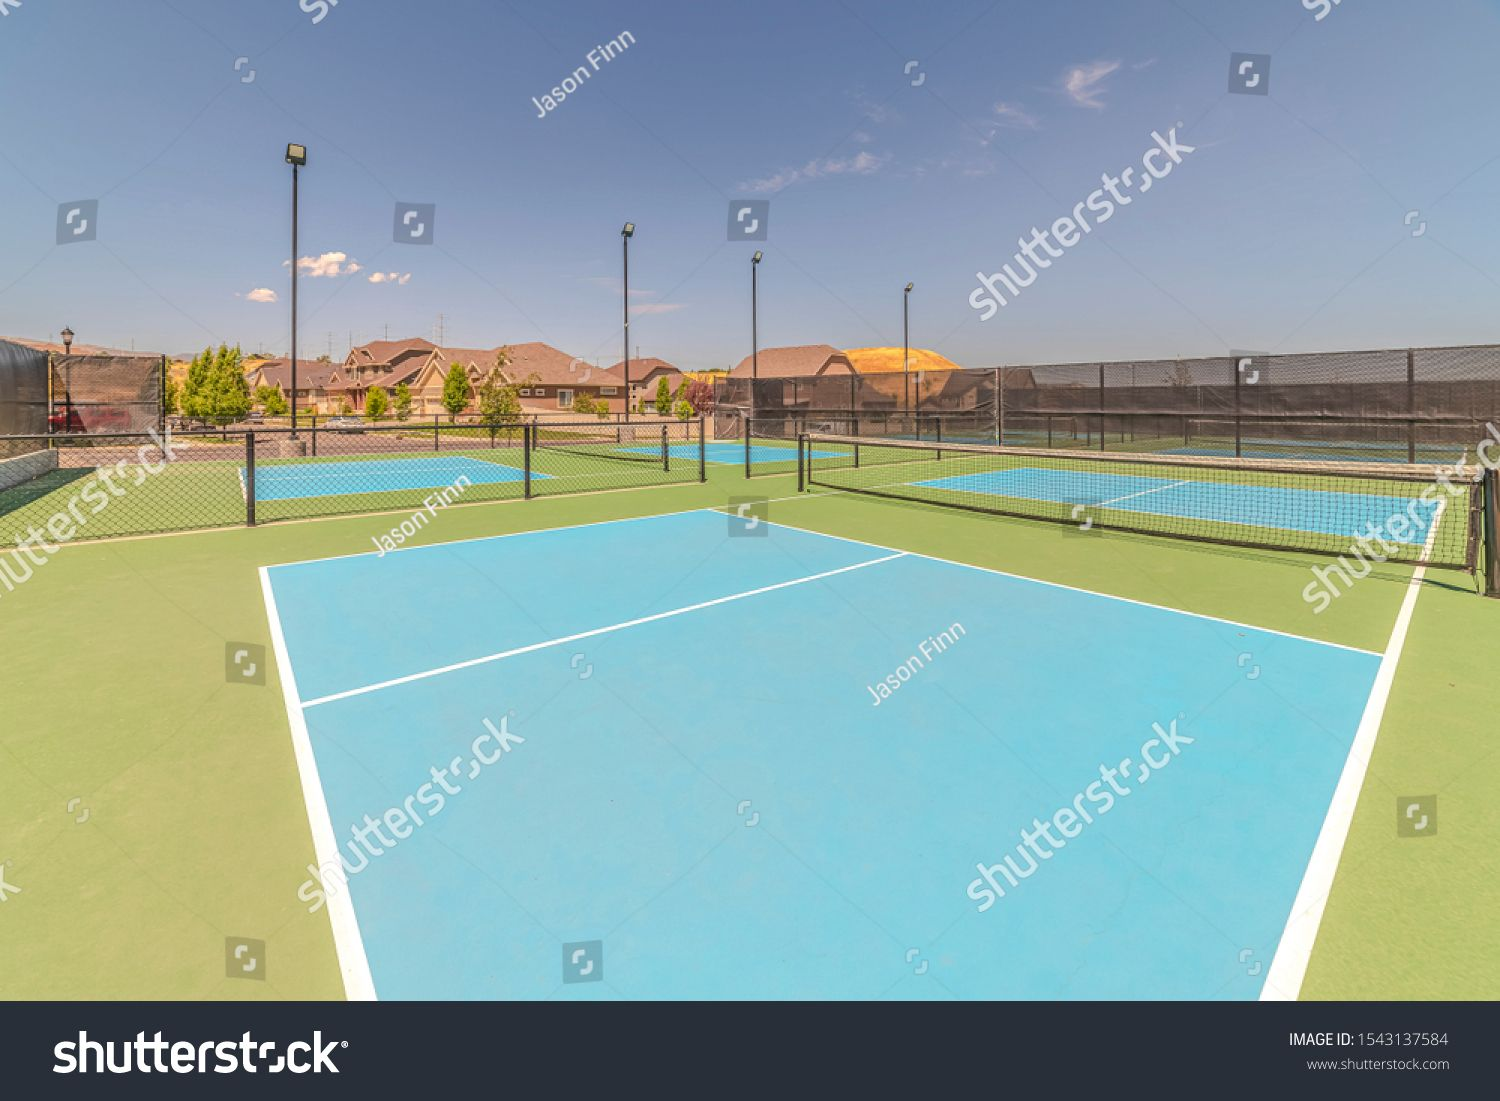 Turf Tennis Courts With No People On Sunny Day Ad Aff Courts Tennis Turf Day Animal Logo Inspiration Tennis Court Animal Logo